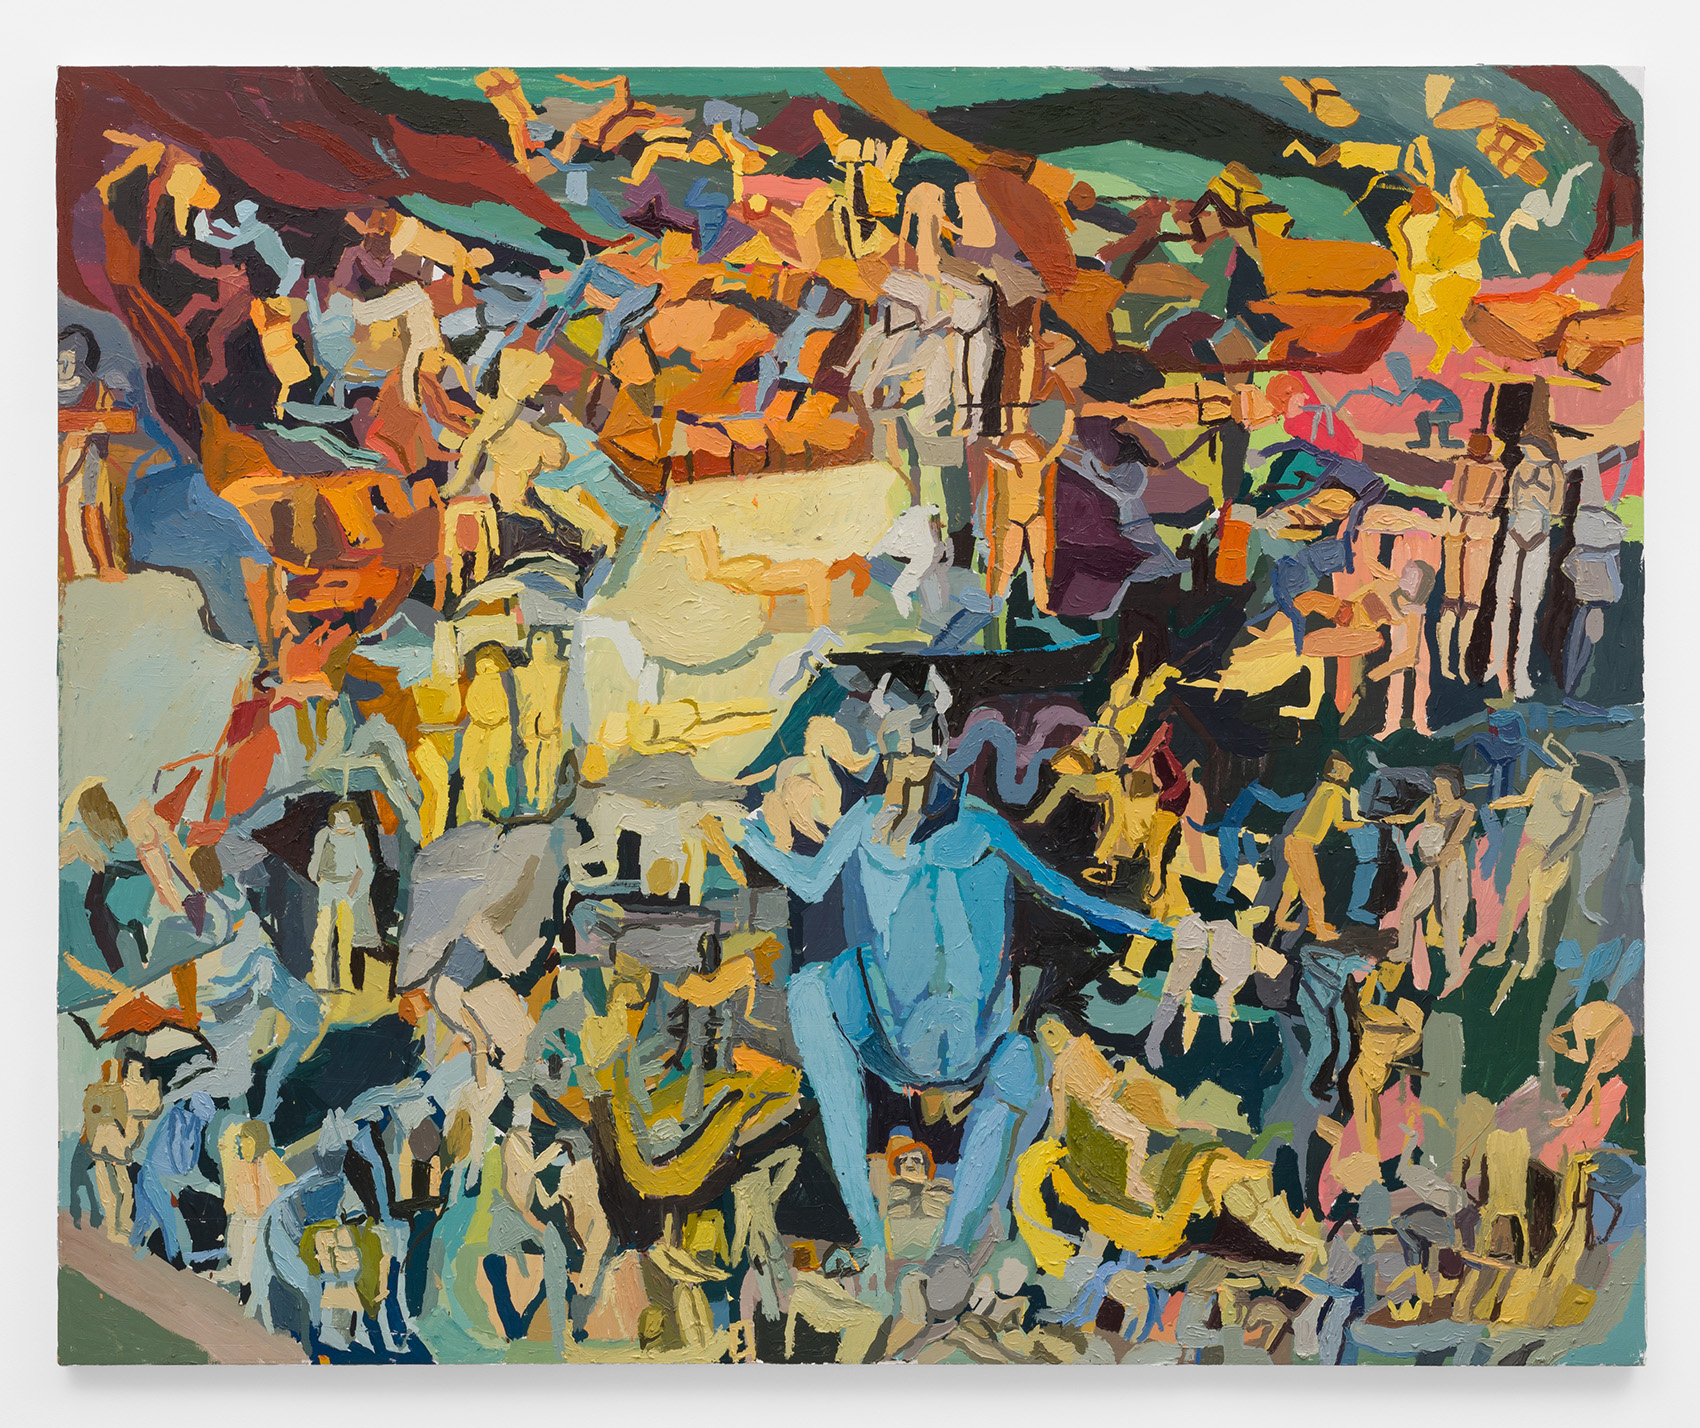 A colorful painting depicts a large mass of human-like figures. They are preoccupied with various tasks, though some seem to be in turmoil as a larger blue creature in the center of the painting eats them.